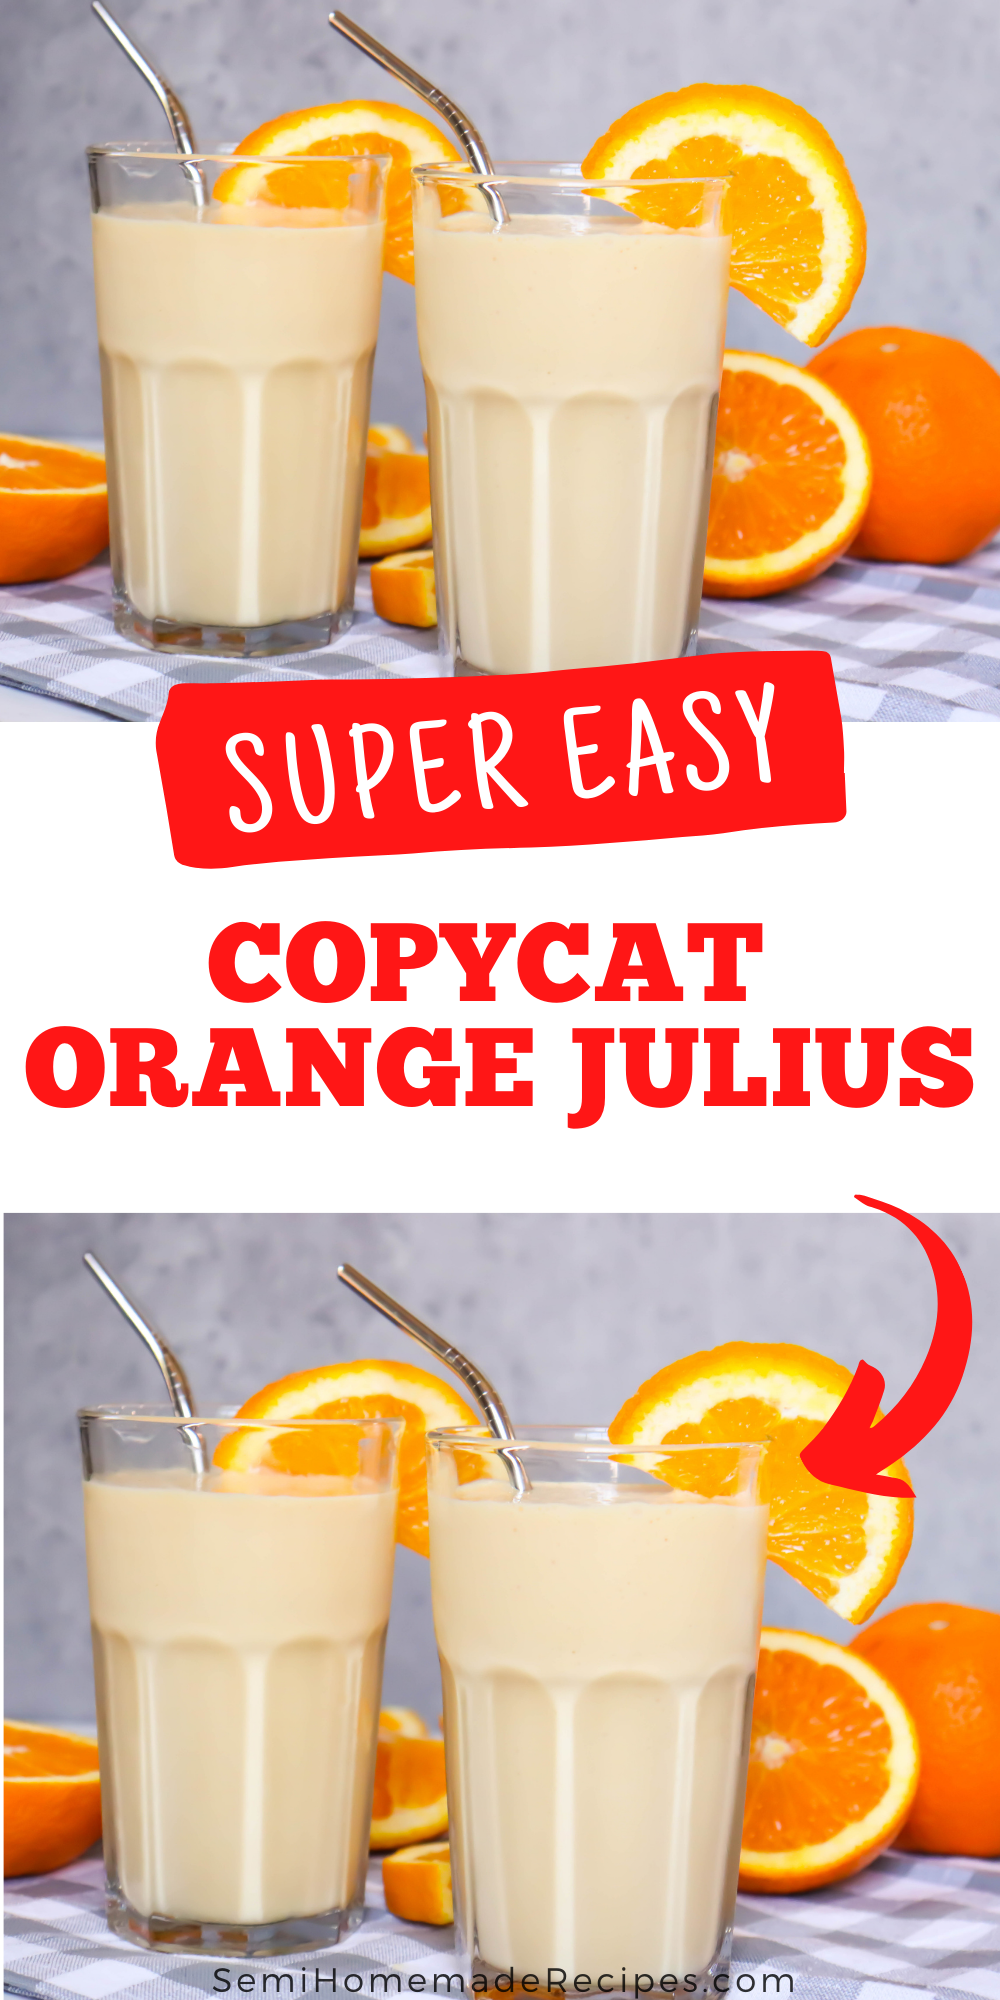 Have you ever had an Orange Julius? You've got to try this easy homemade Copycat Orange Julius recipe!